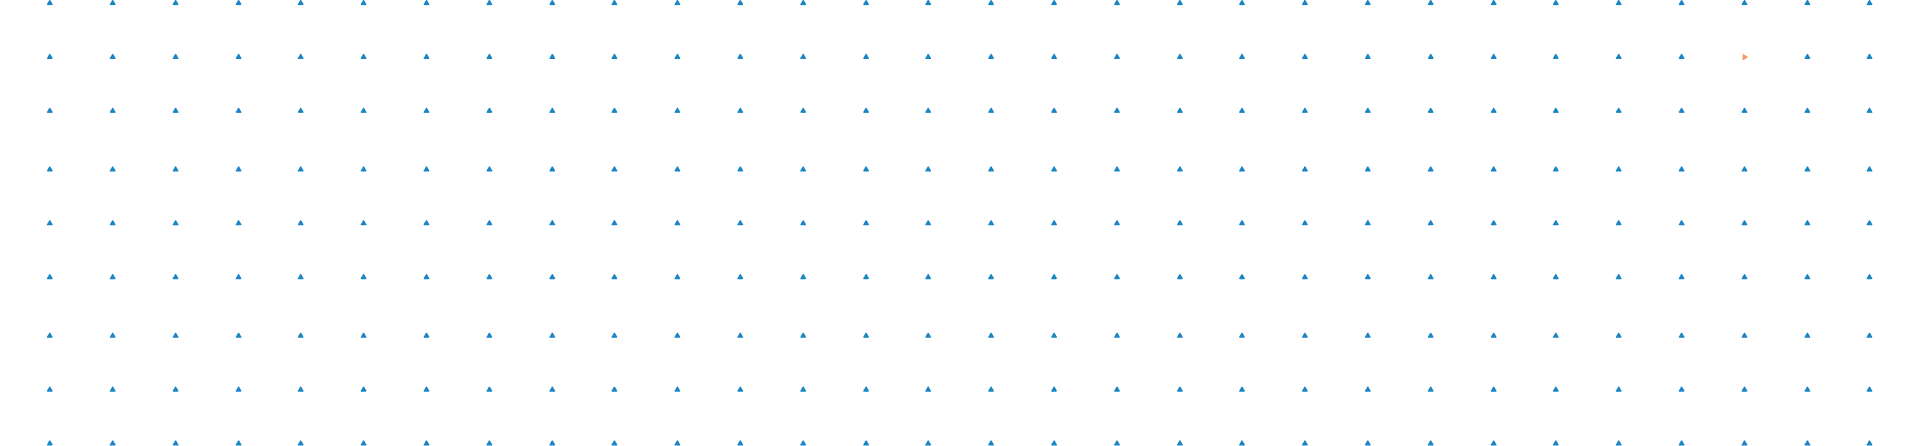 background dotted image